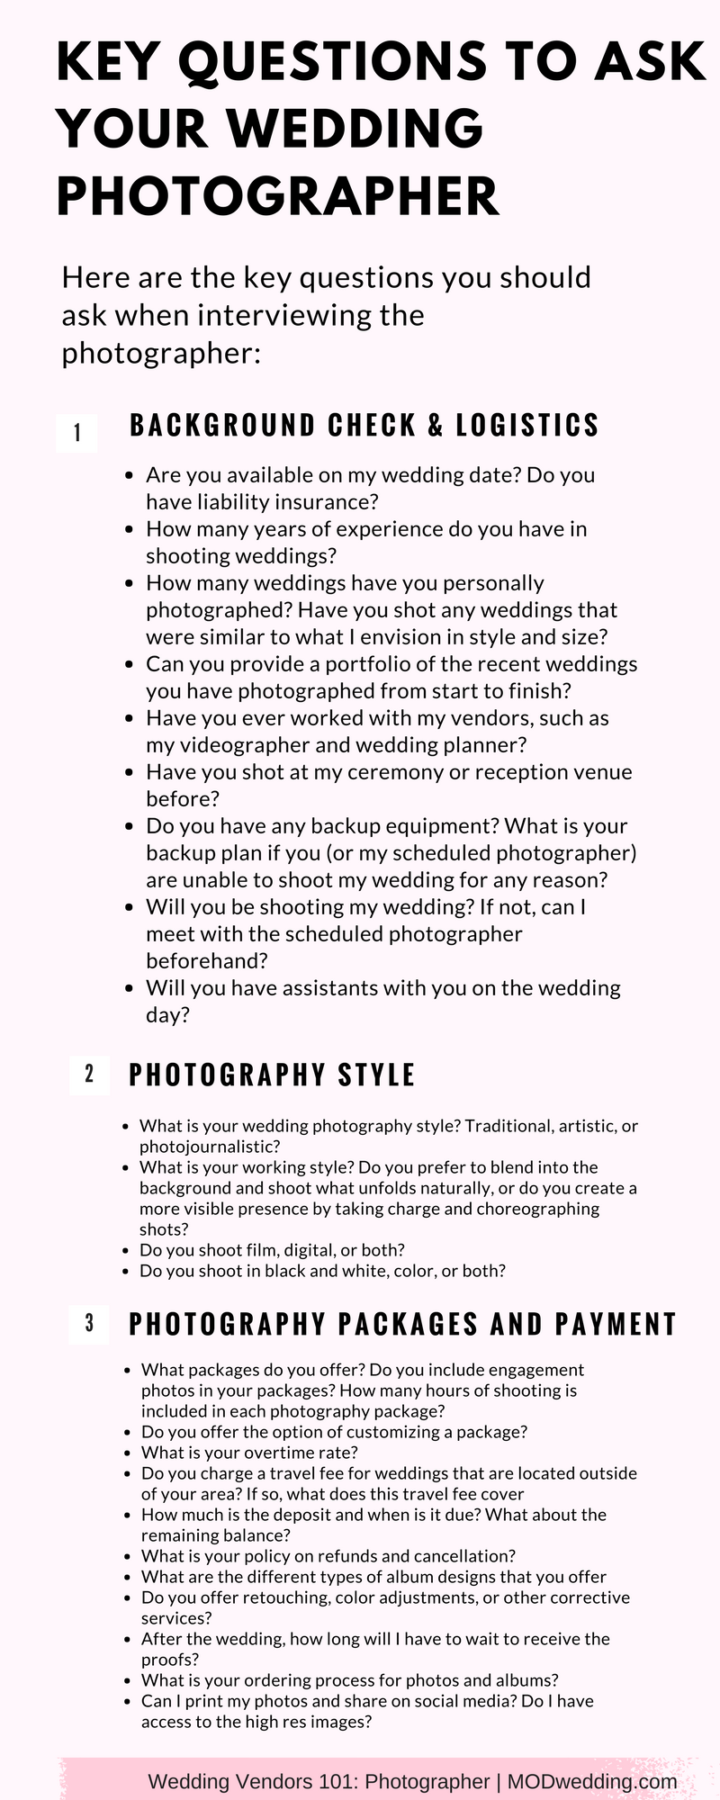 Key-questions-to-ask-photographer-04252017